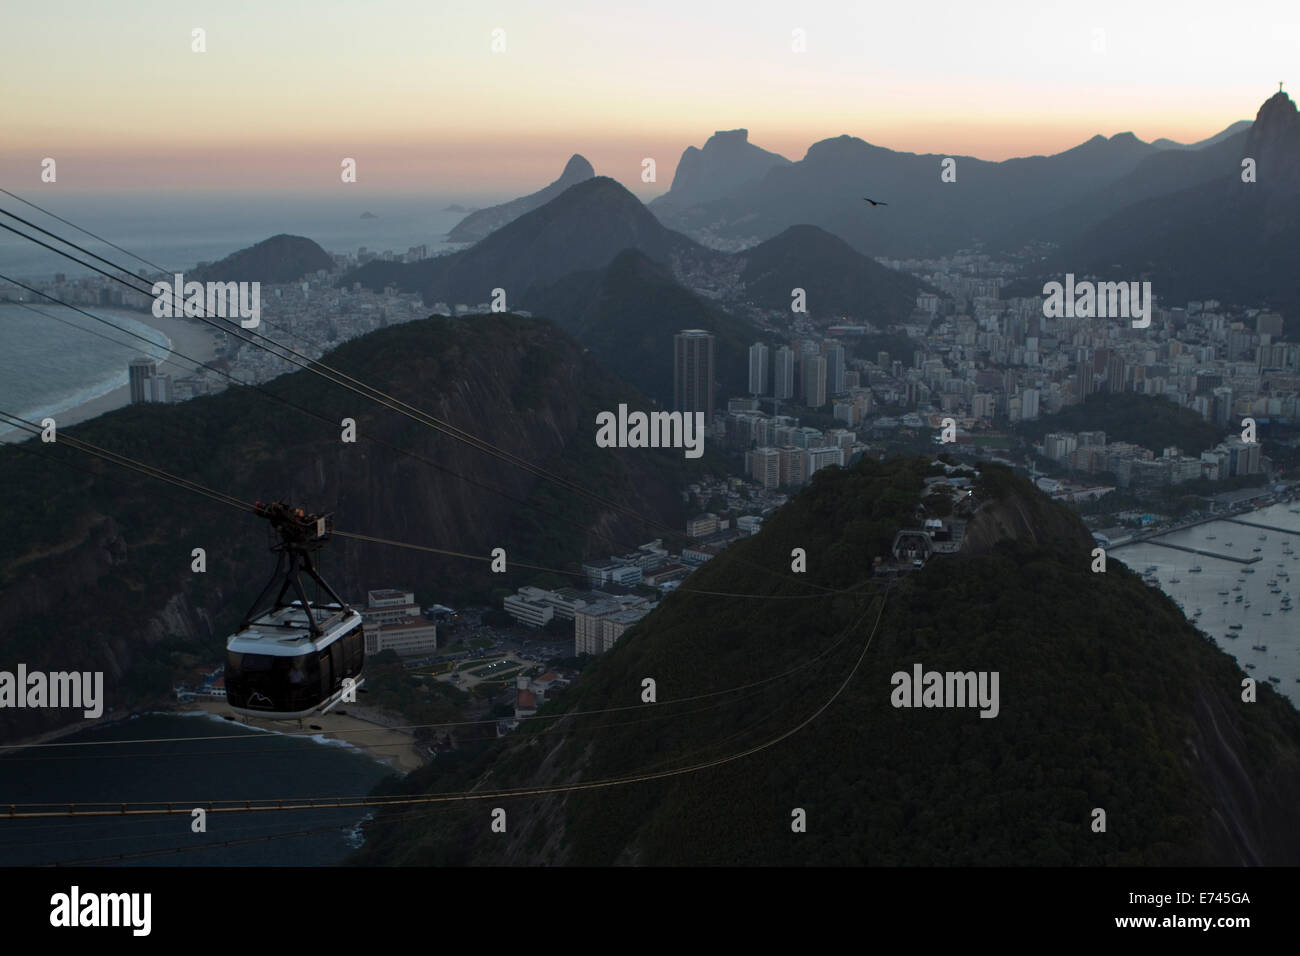 World-known cable car up the hill to the top of Pao de Azucar in Rio de Janeiro, Brazil. - Stock Image